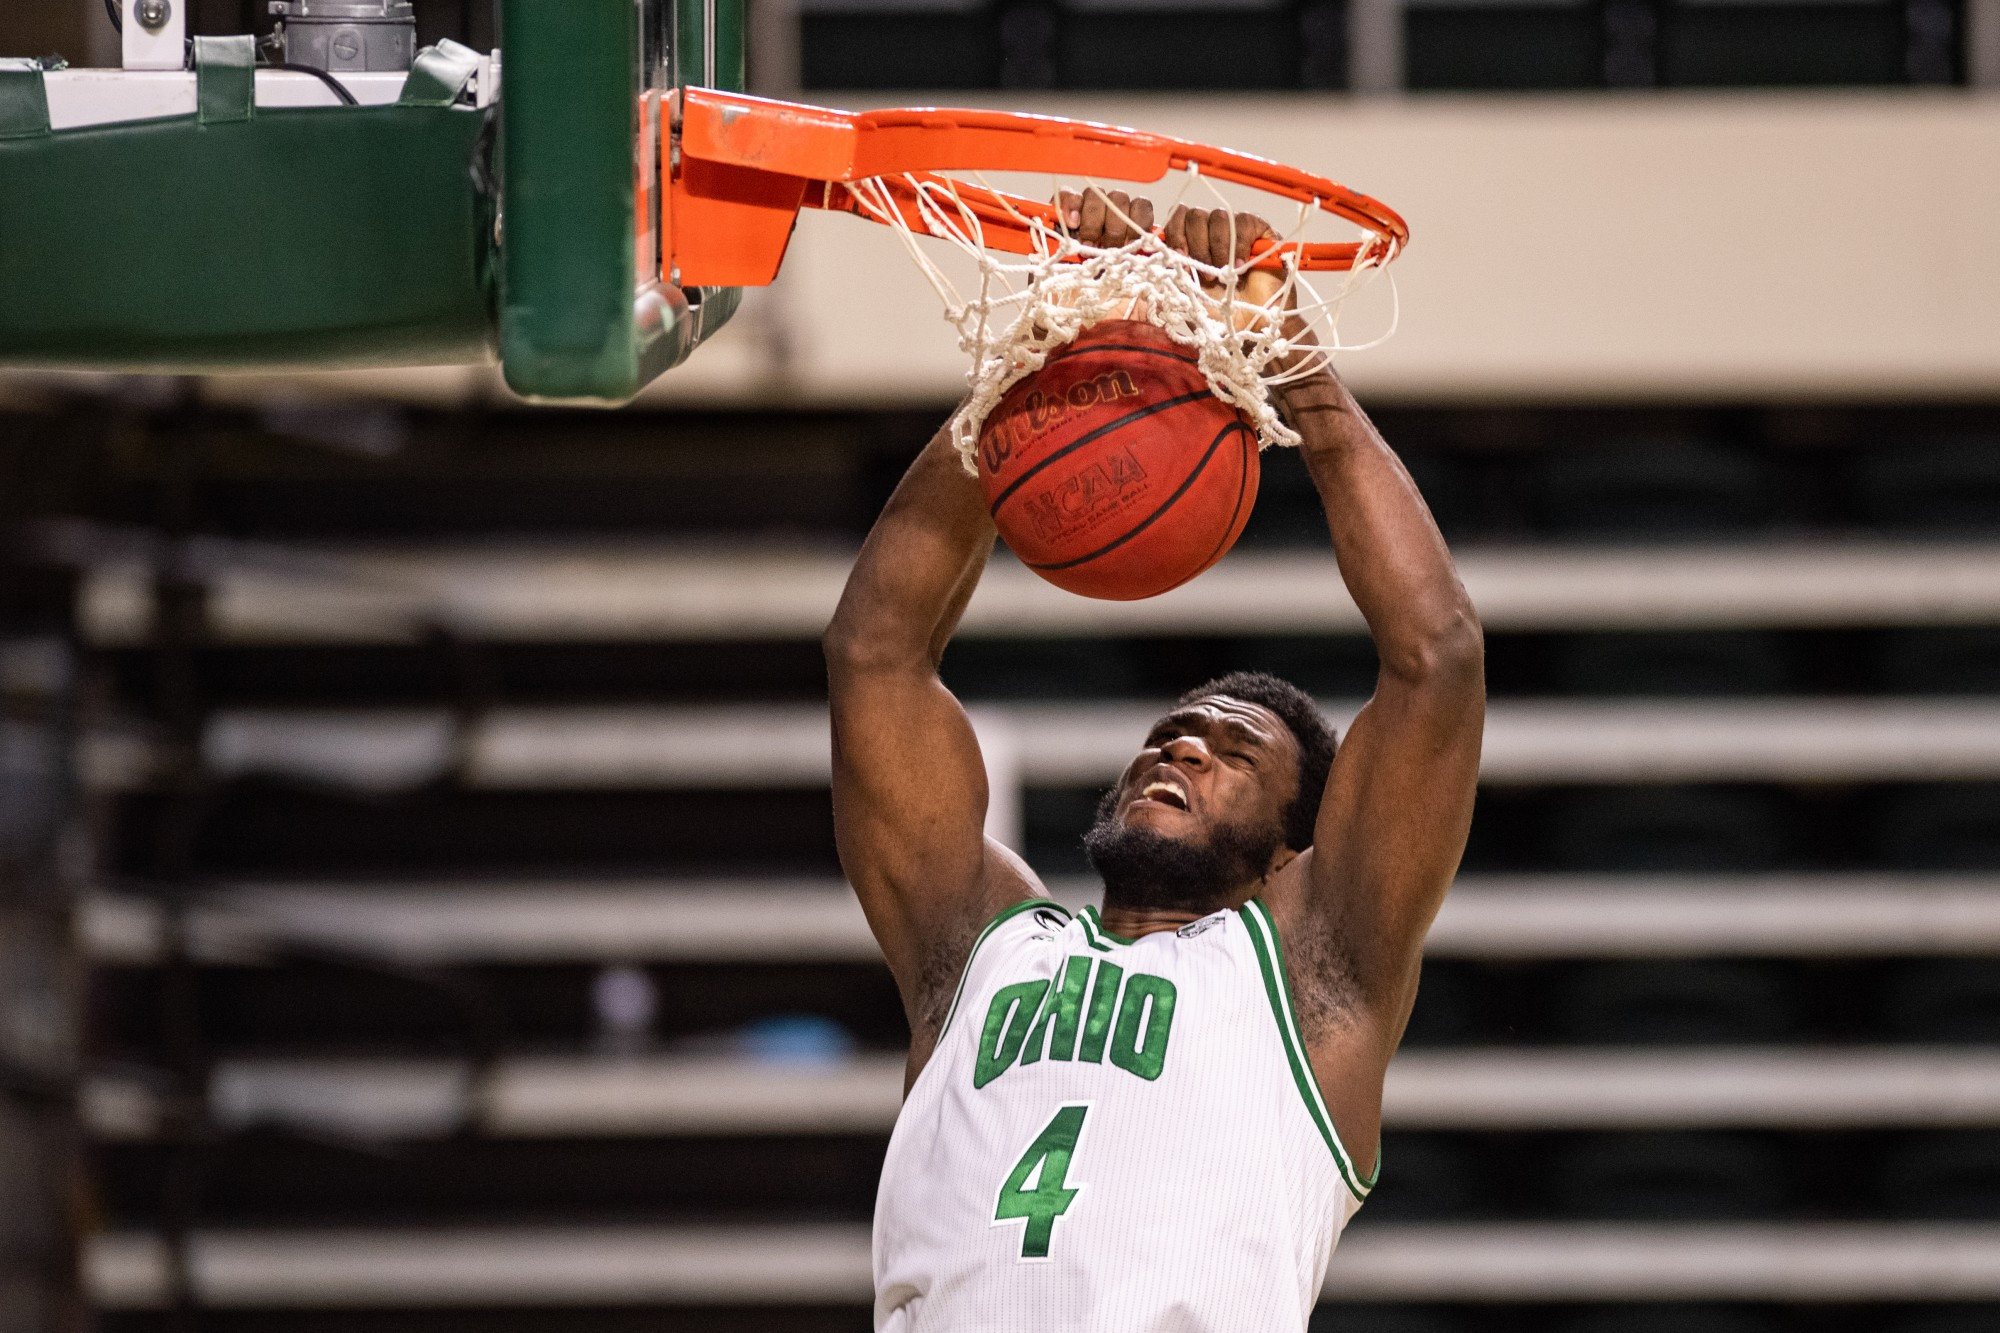 Ohio's Dwight Wilson III (#4) dunks the ball during the Ohio versus Purdue Northwest game in The Convo on Thursday, Dec. 10, 2020.